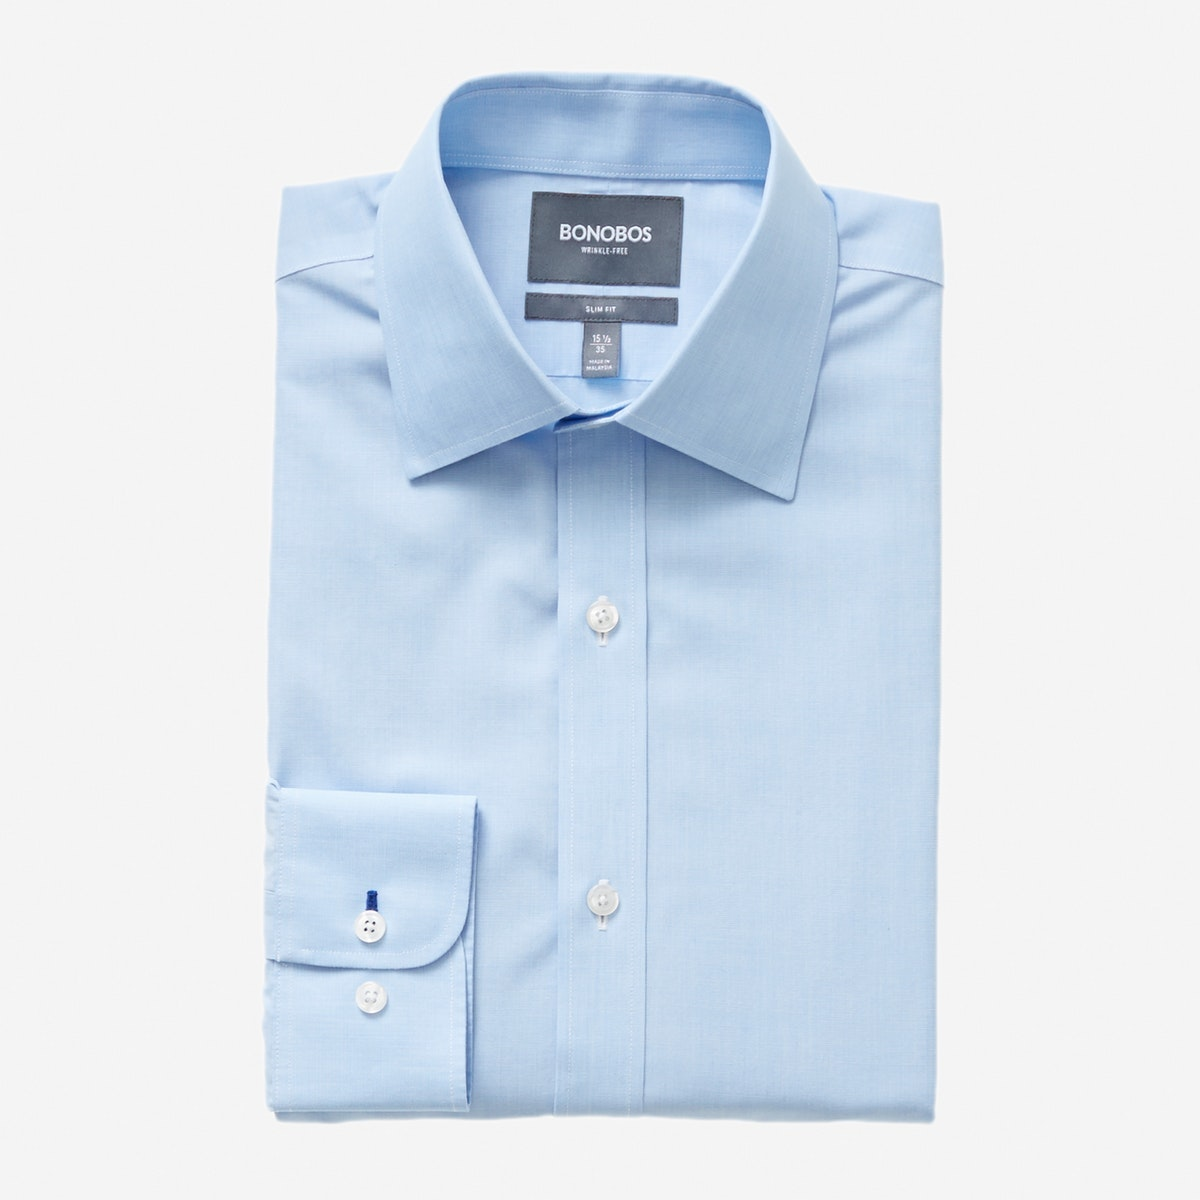 Daily Grind Wrinkle Free Dress Shirt  - Pocket